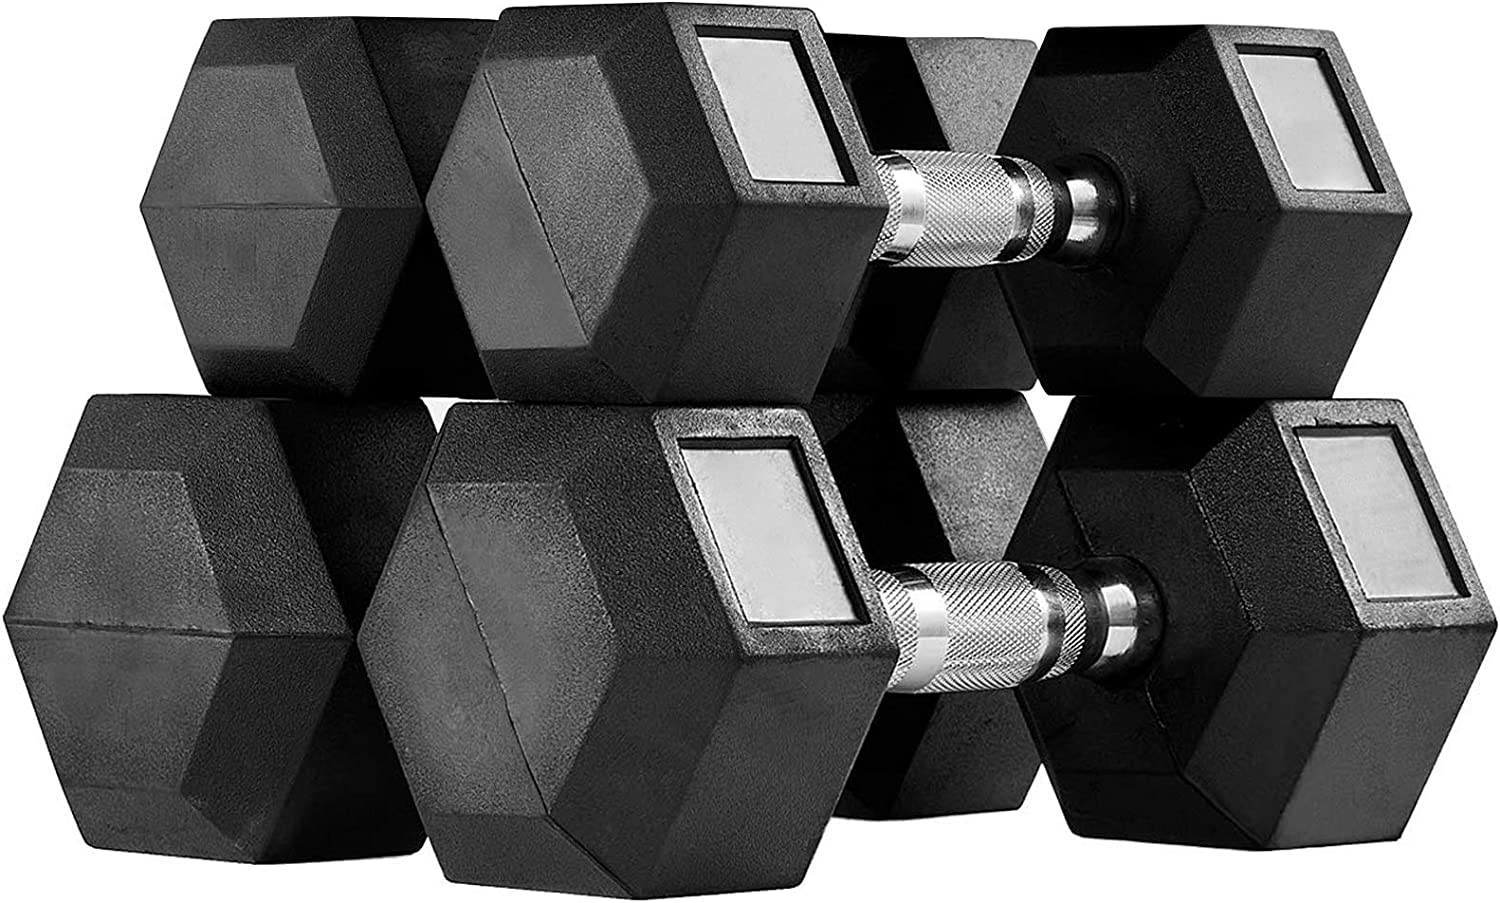 MENCIRO Rubber Encased Hex Dumbbell Set, Dumbbell Weights Set for Home Gym Free Weight Training